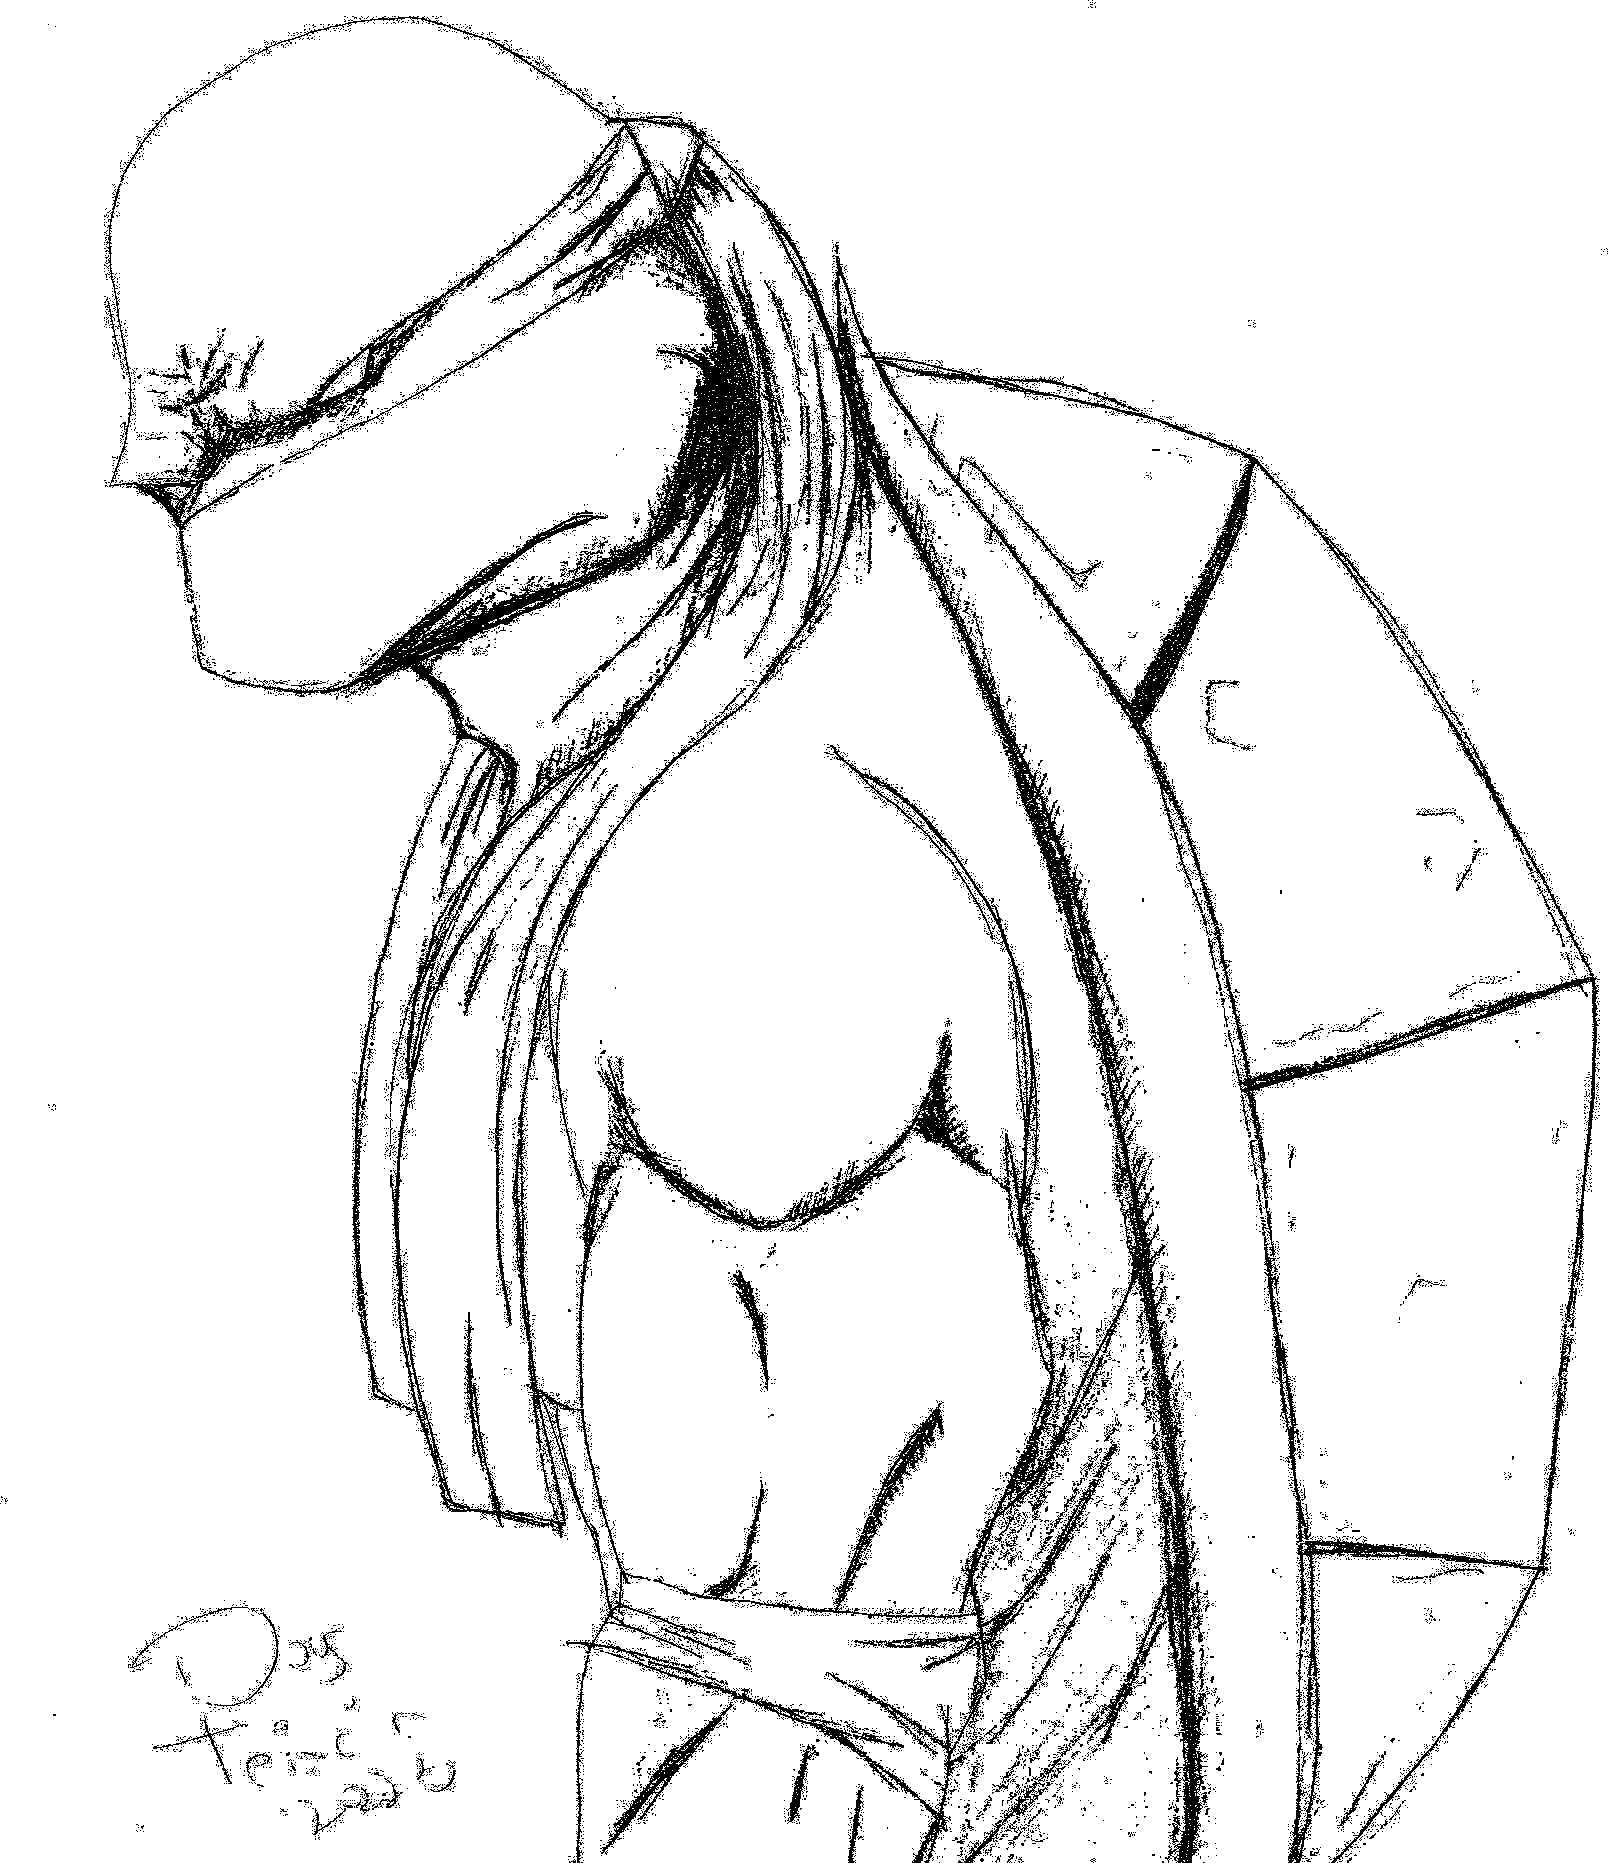 Line Art Ninja Turtles : Ninja turtle by doug on deviantart